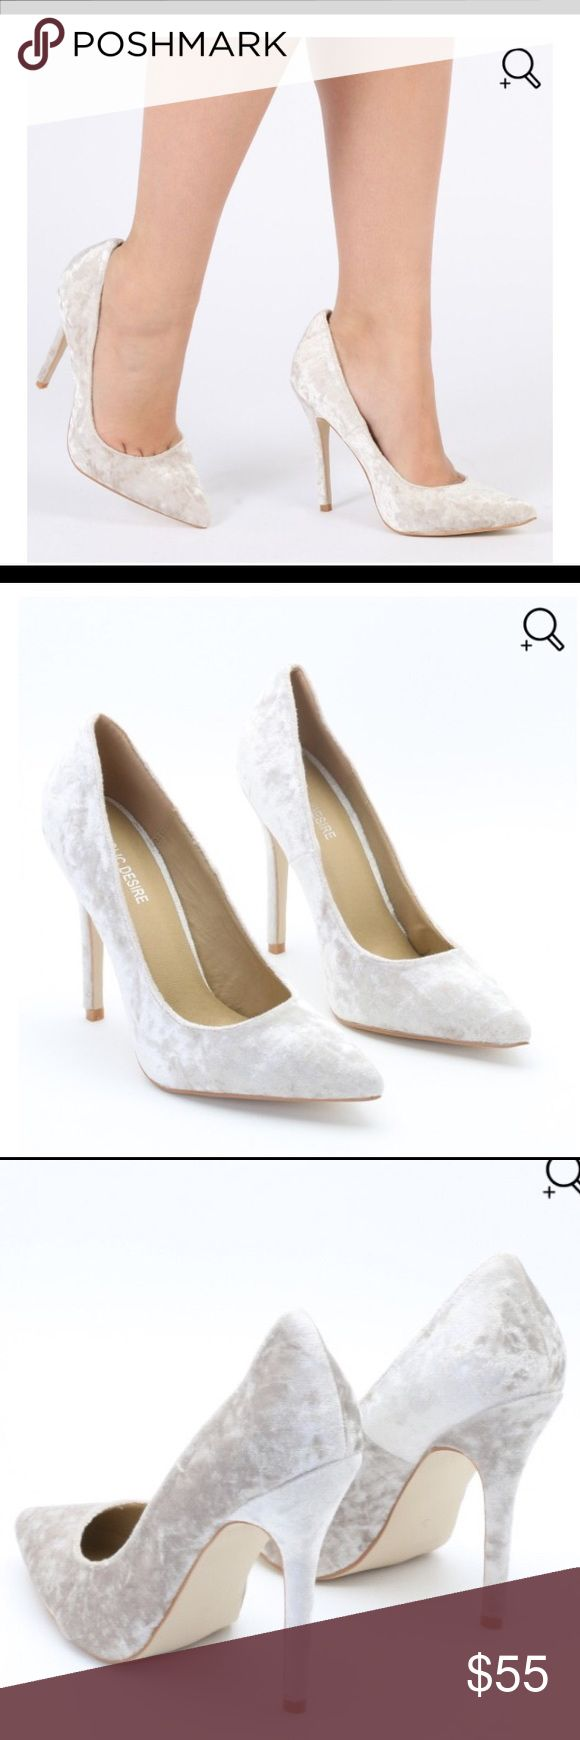 "Public Desire Crushed Velvet Cream Pump Brand New in original box! Public Desire Crushed Velvet Cream Pump- Size 5 runs true to size/////.                                                          Put your best (and most stylish) foot forward in our luxe crushed velvet court pumps. We're loving the stiletto heel and pointed toe. Team with a killer block colour on trend trouser suit.     Heel height: 4.5"" / 11cm Material: Synthetic, Manmade Crushed Velvet public desire Shoes Heels"